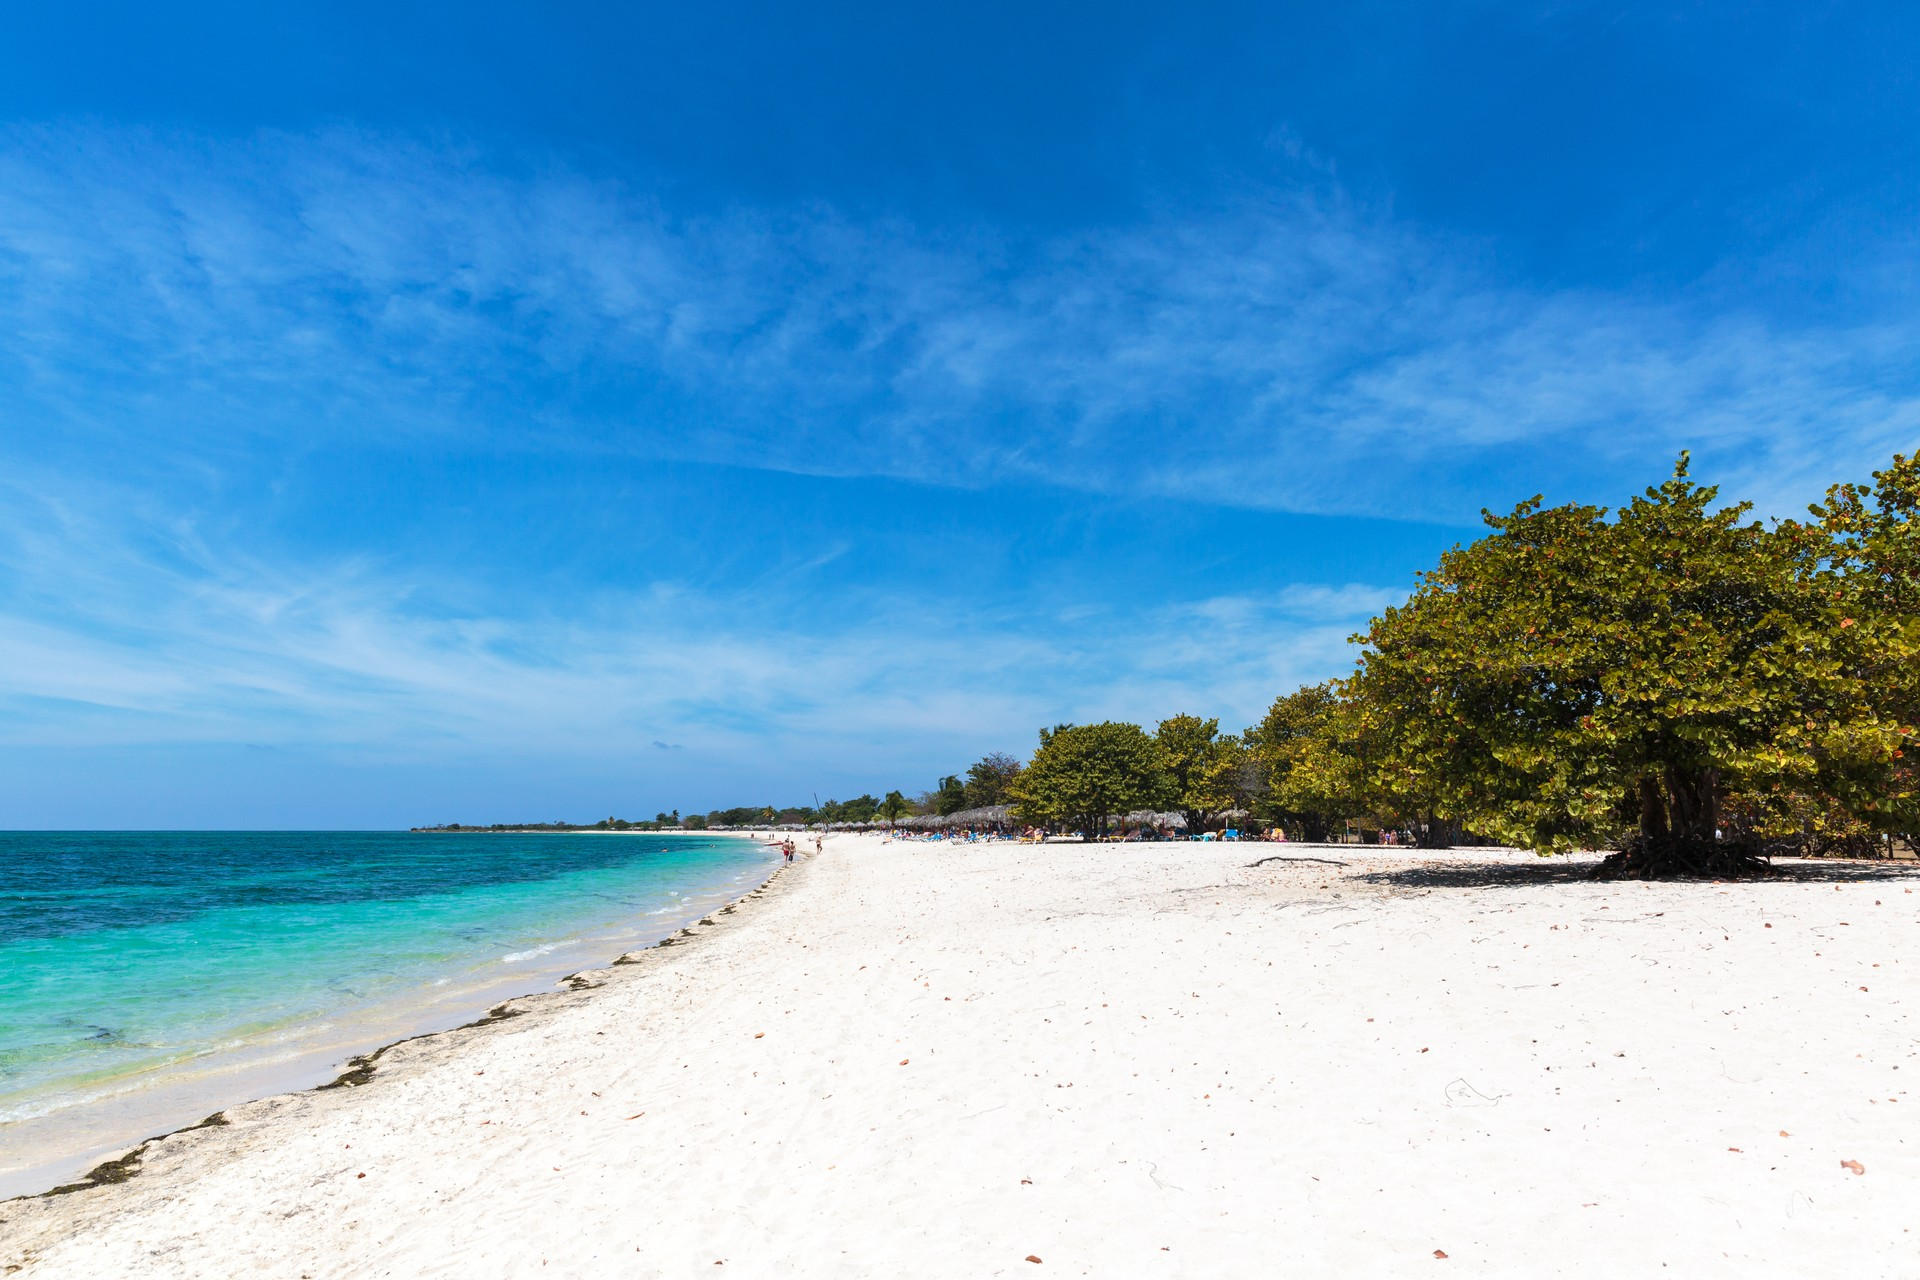 Playa Ancón is located just 15 km outside of Trinidad in Cuba